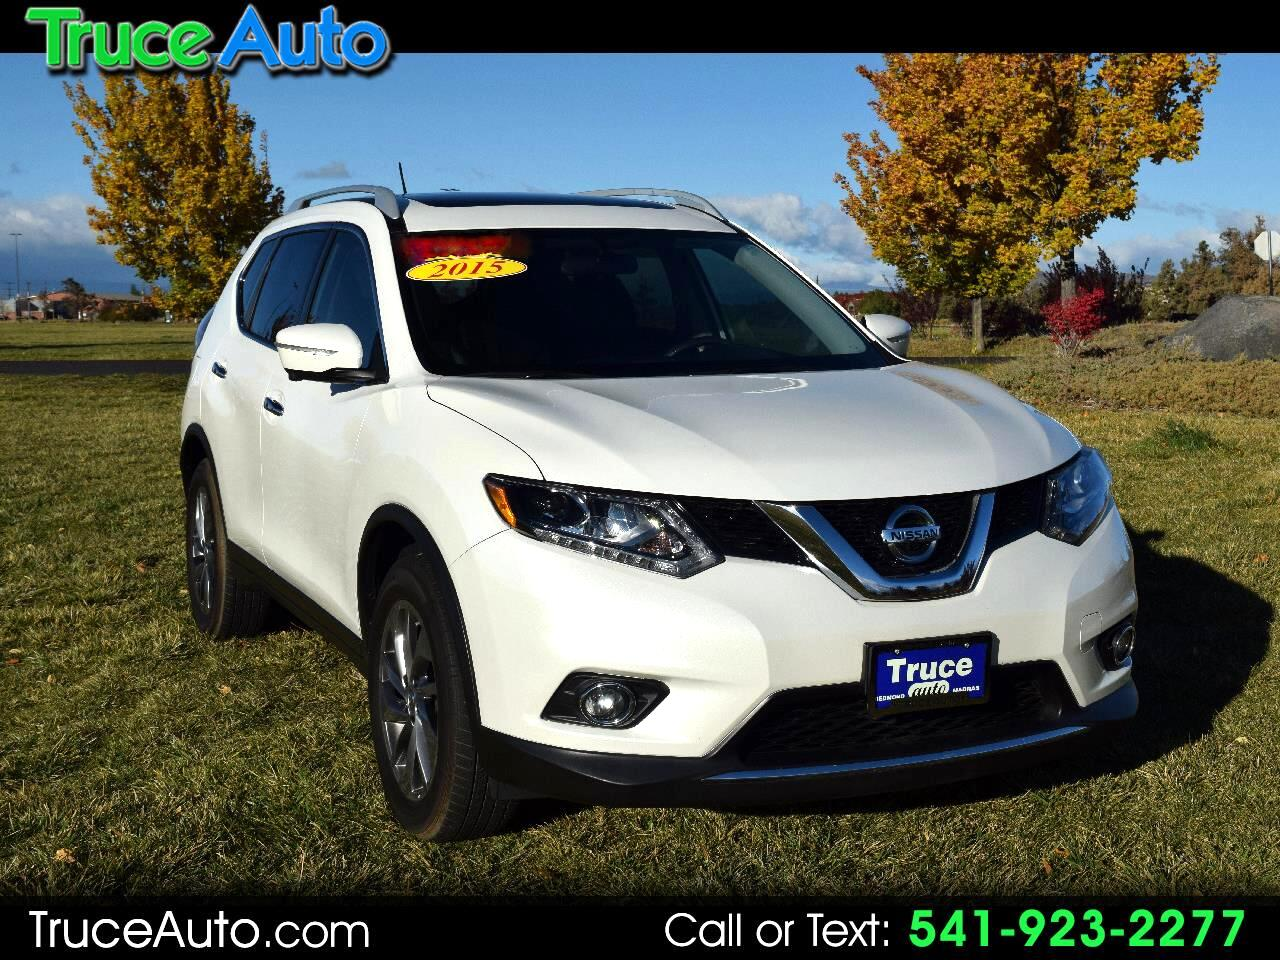 2015 Nissan Rogue SL AWD LOW MILE